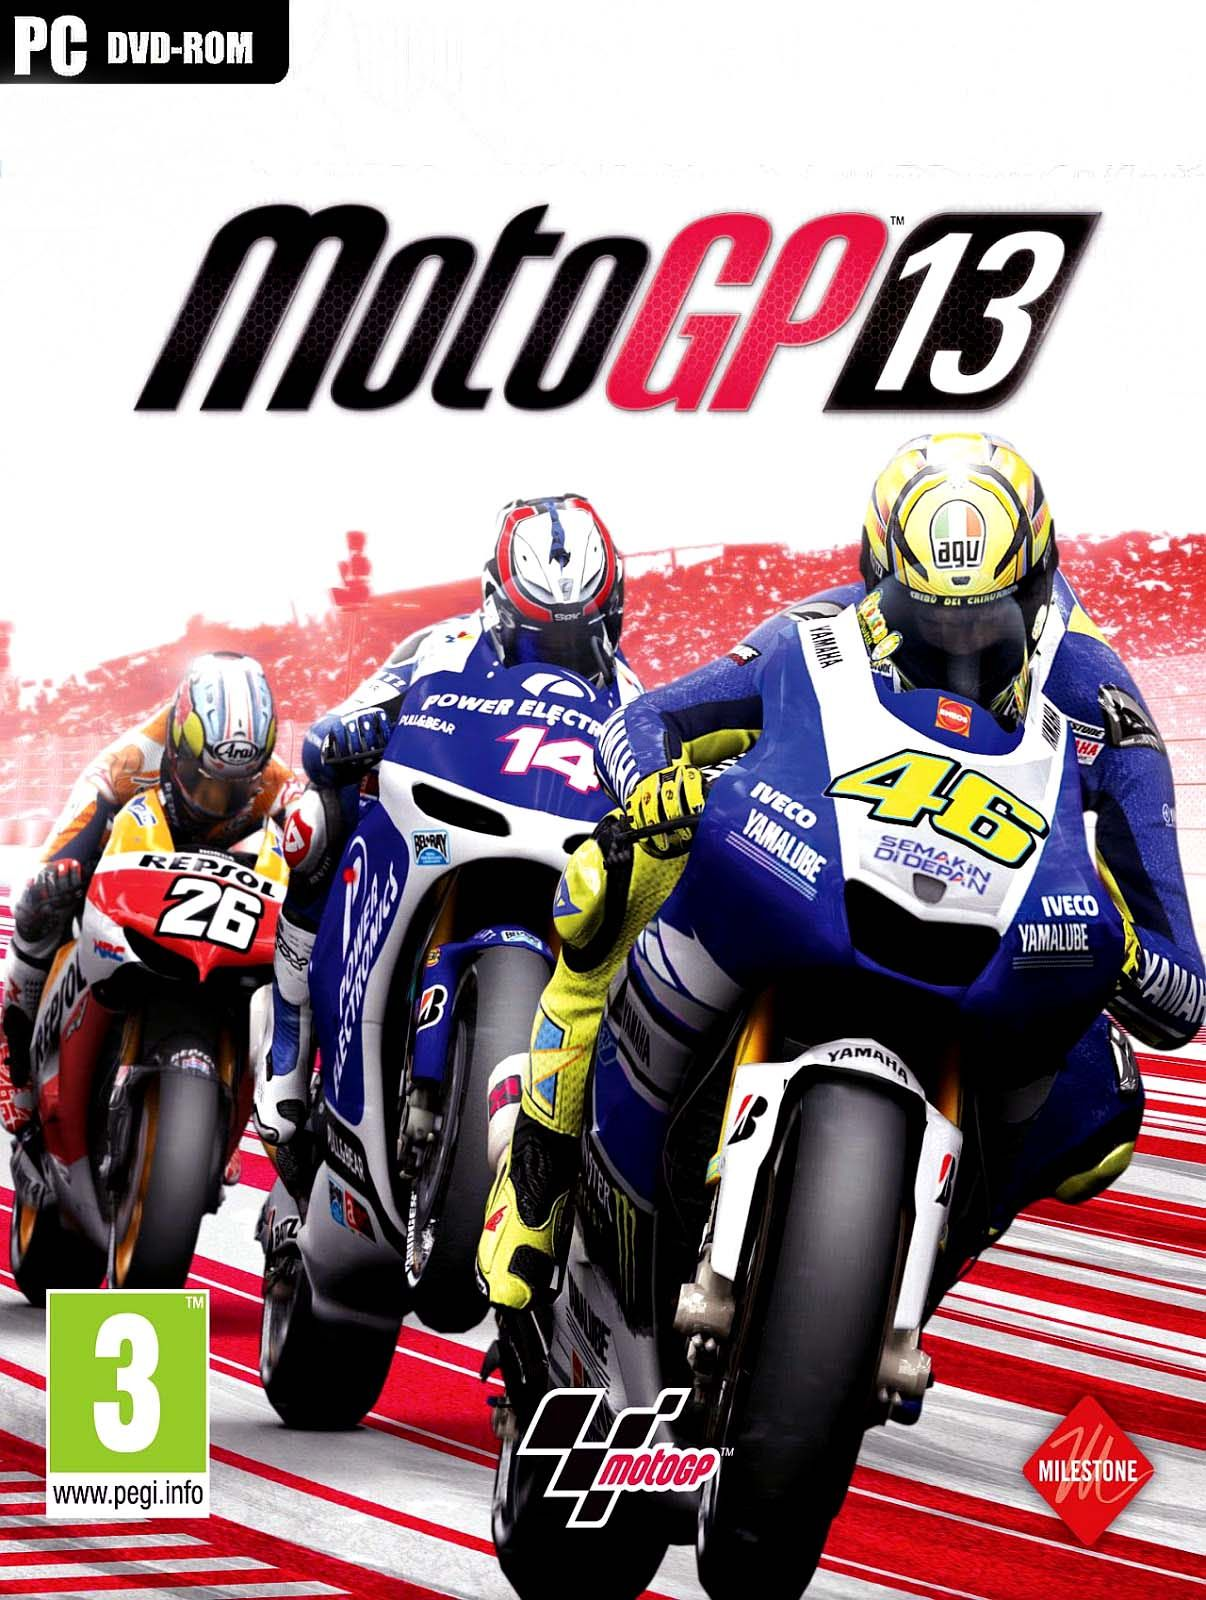 motogp 13 pc game free download full version from online to here